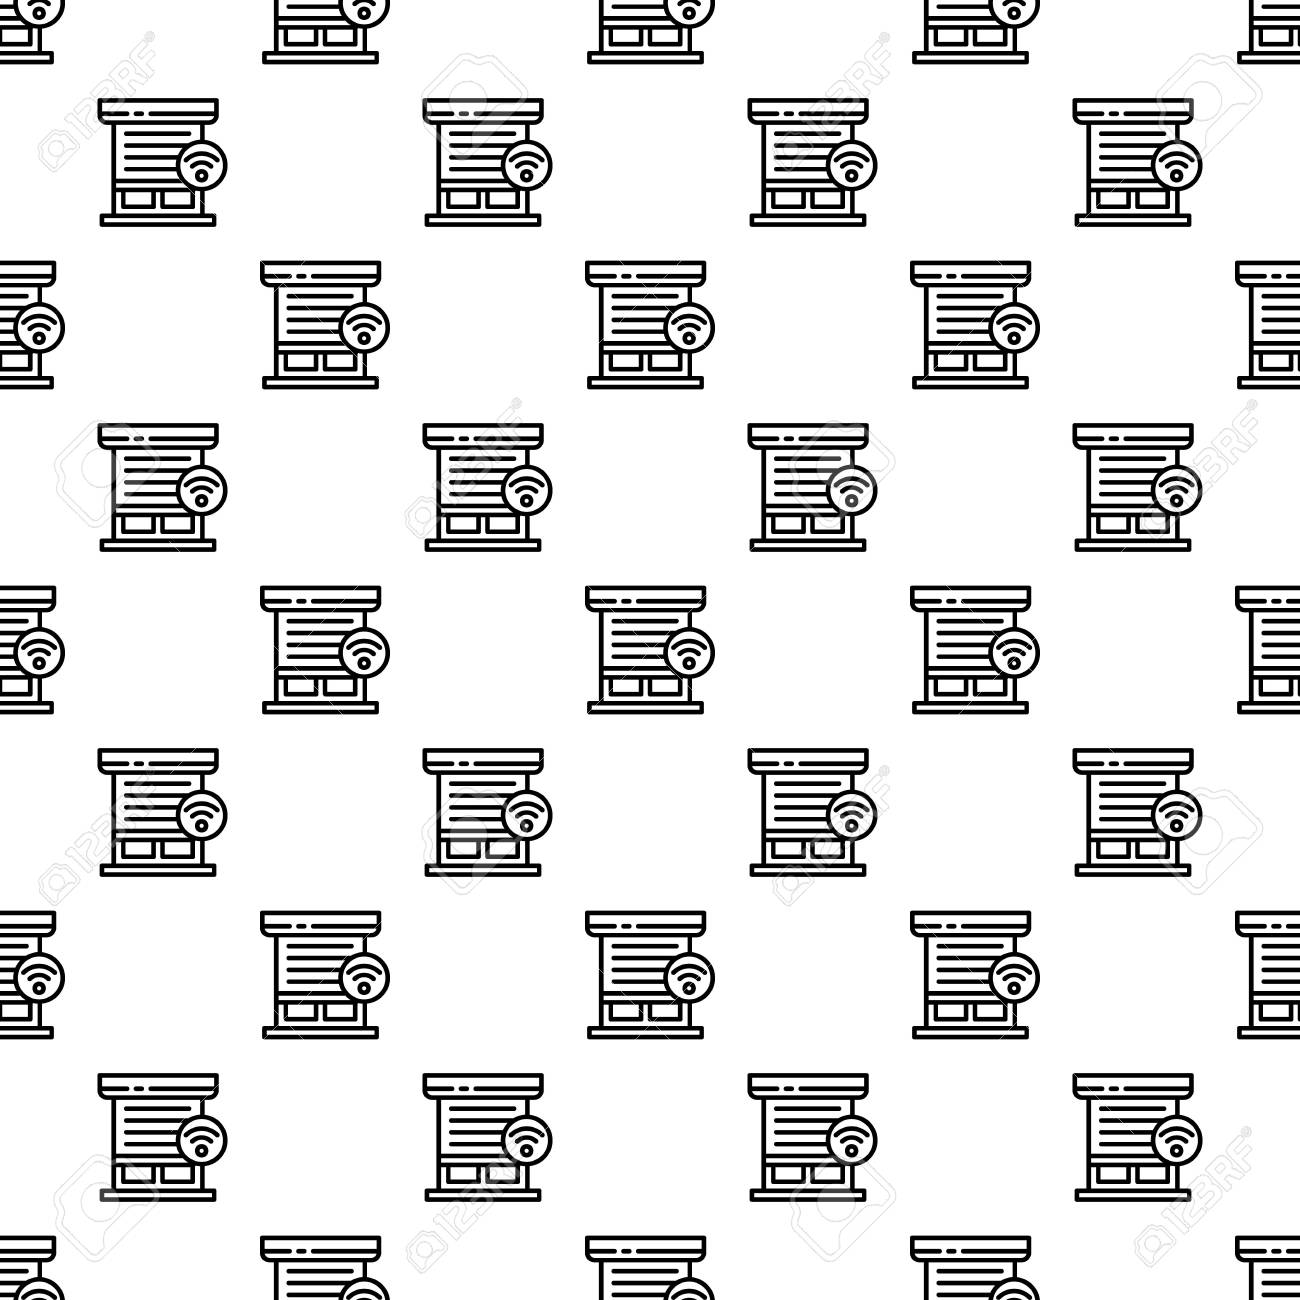 Smart louver pattern seamless repeat background for any web design - 111231461